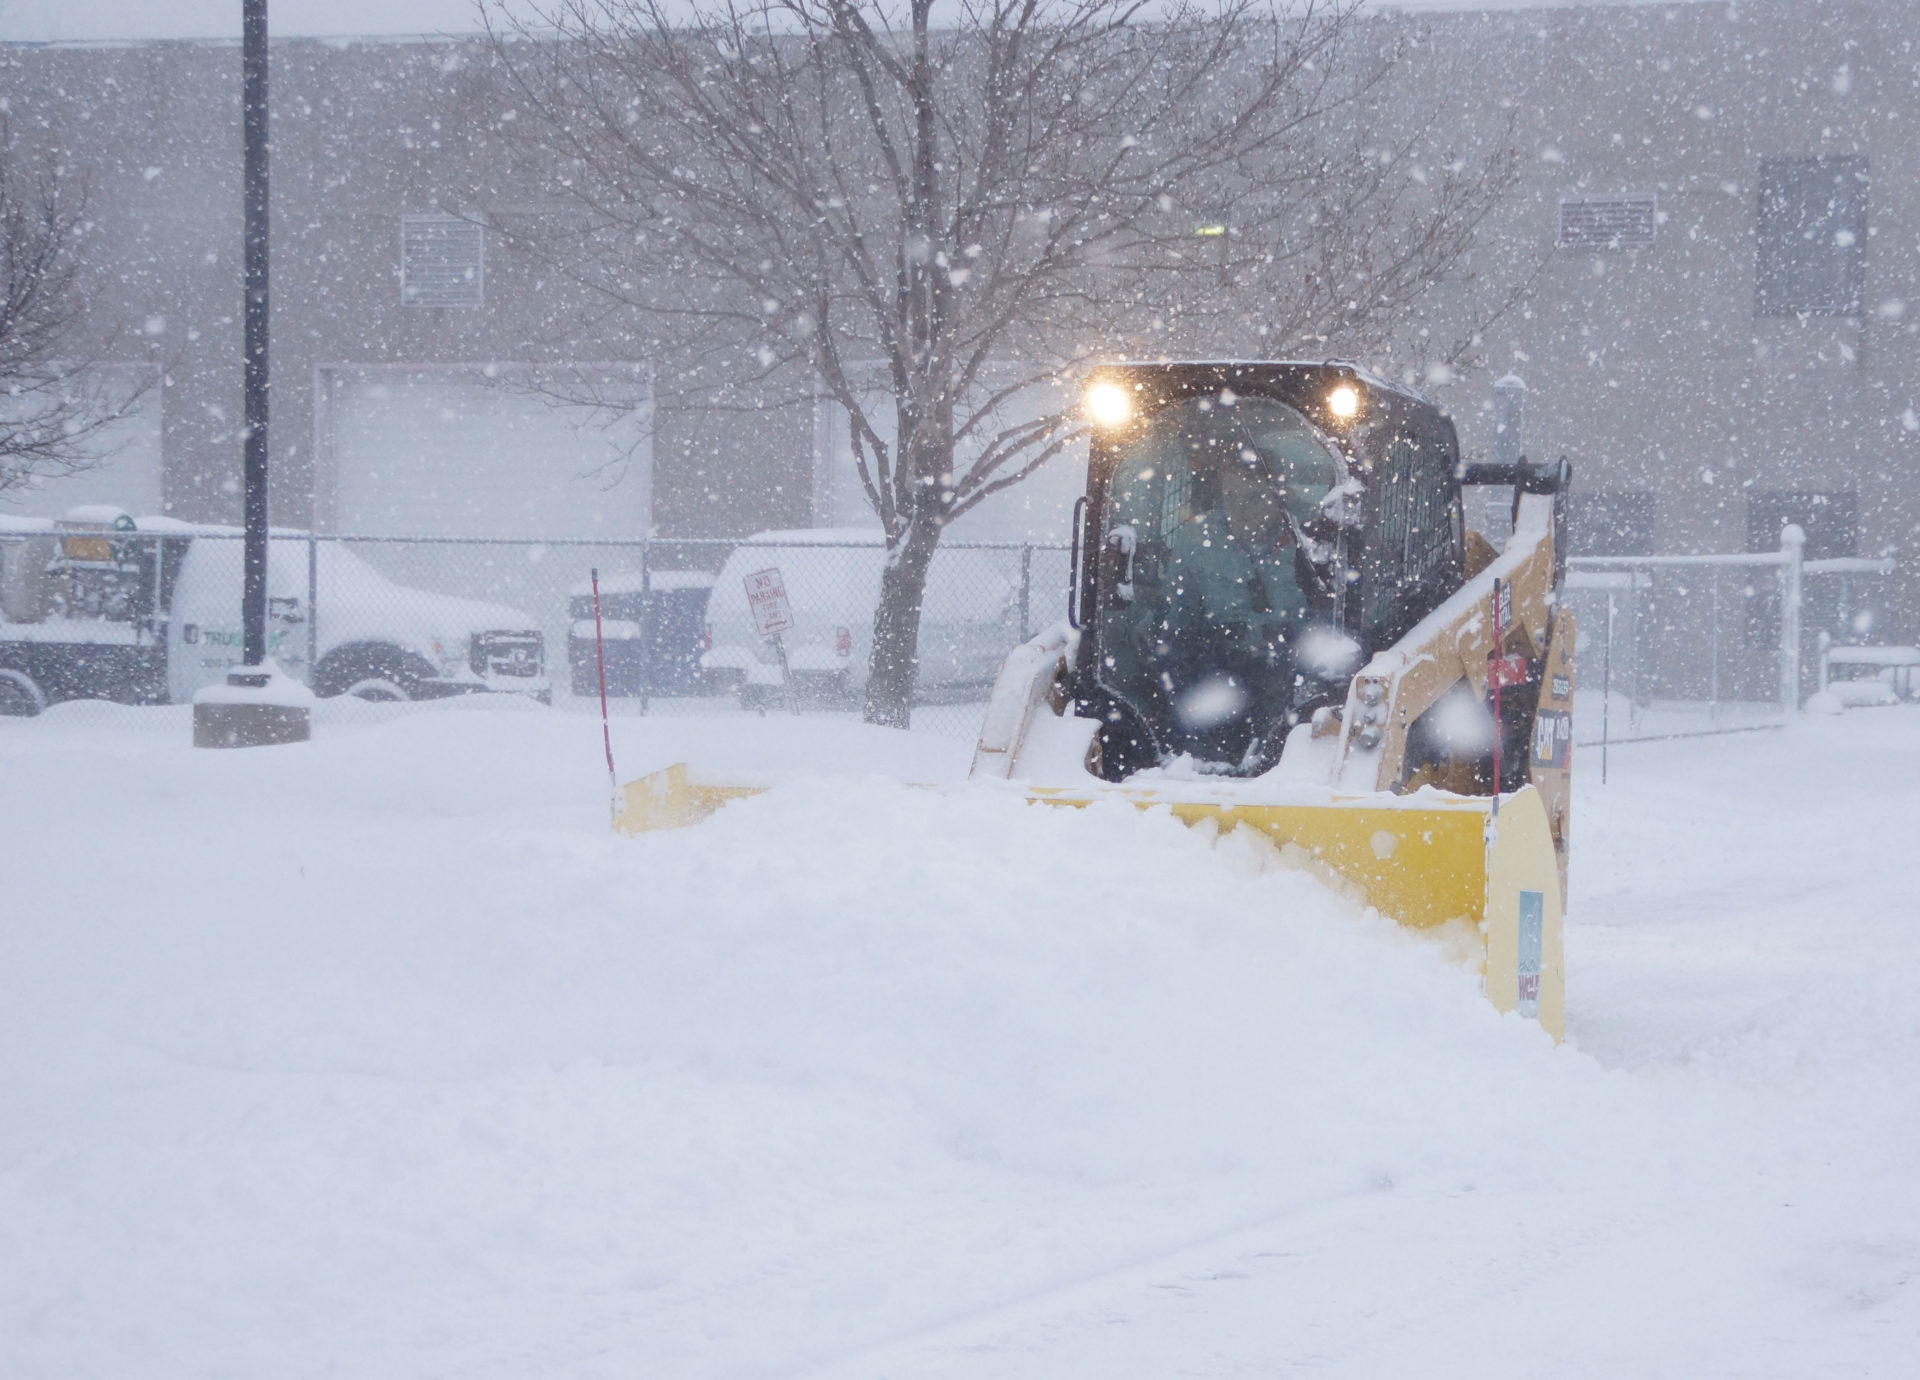 Bidding on Low Snow Tolerance Facilities? Here's What You Need to Know